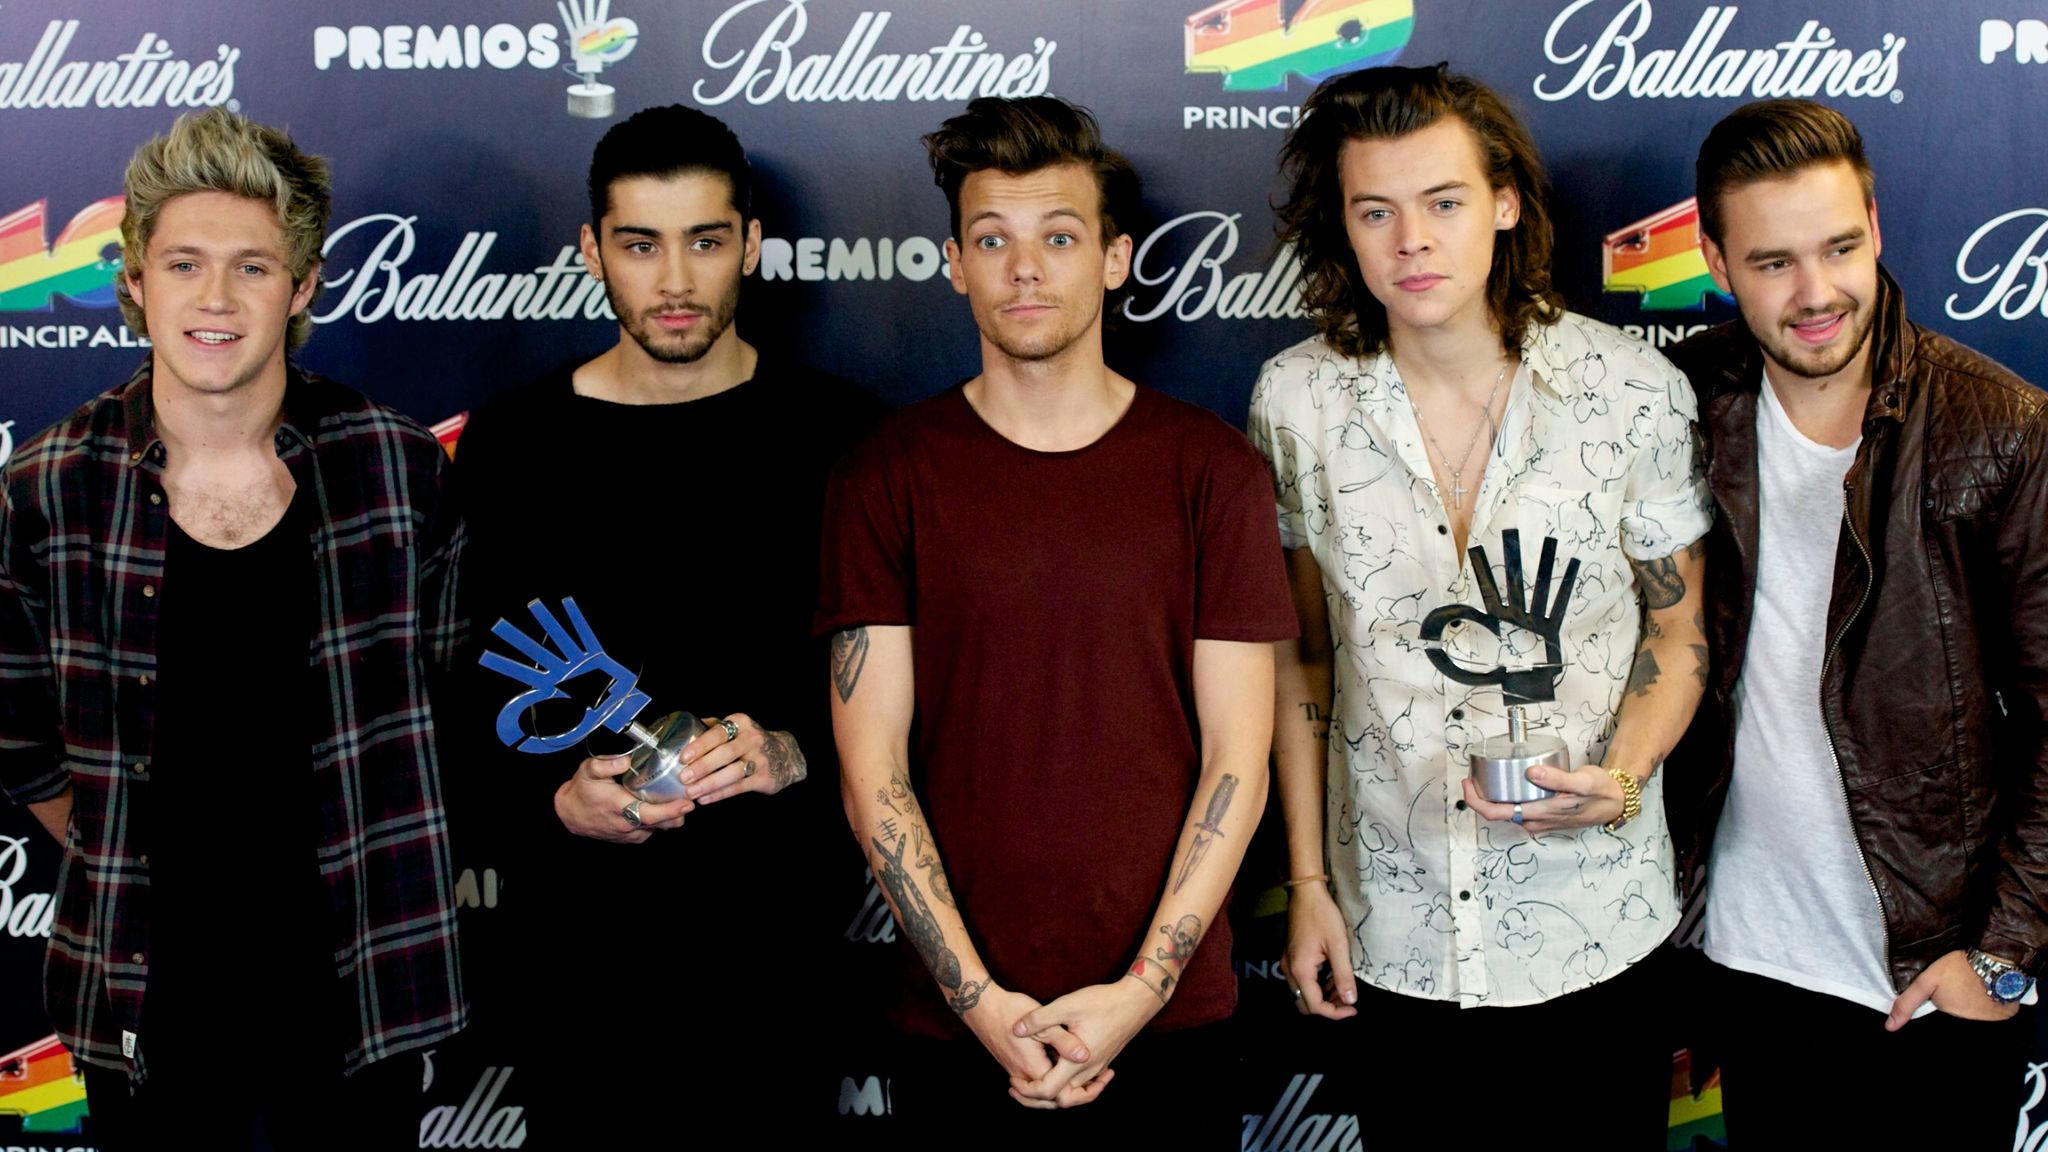 Liam Payne: One Direction reunion will happen 'for sure'